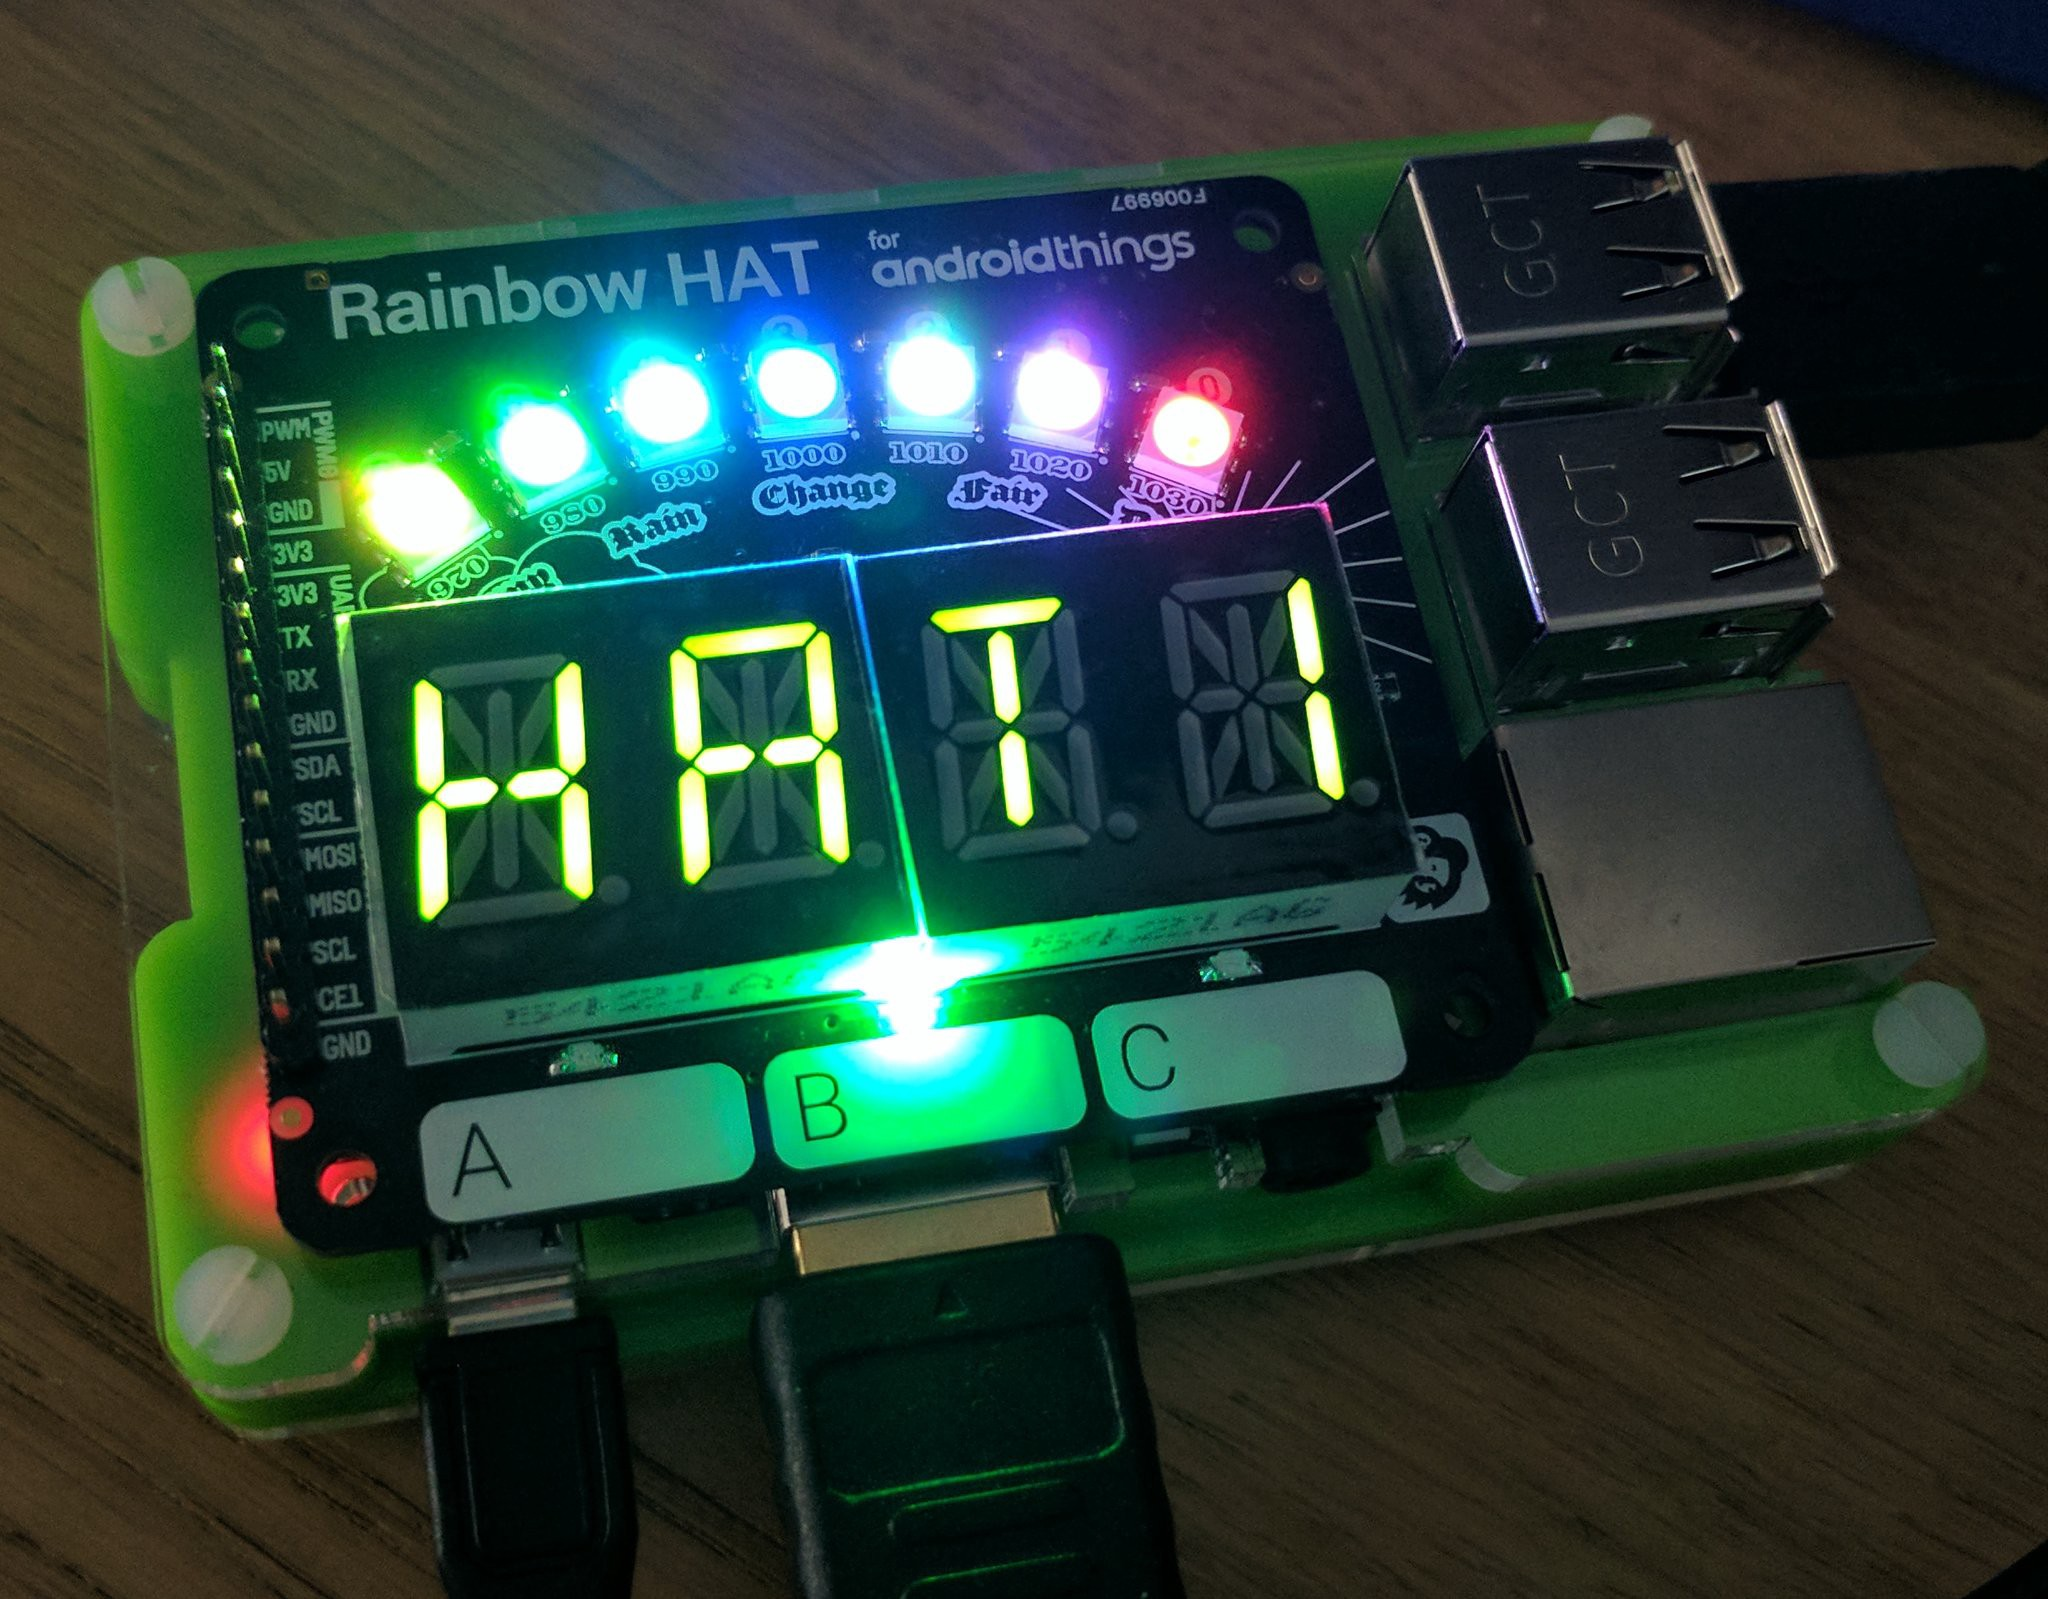 DoReFindMi — A game experiment for Rainbow HAT and Android